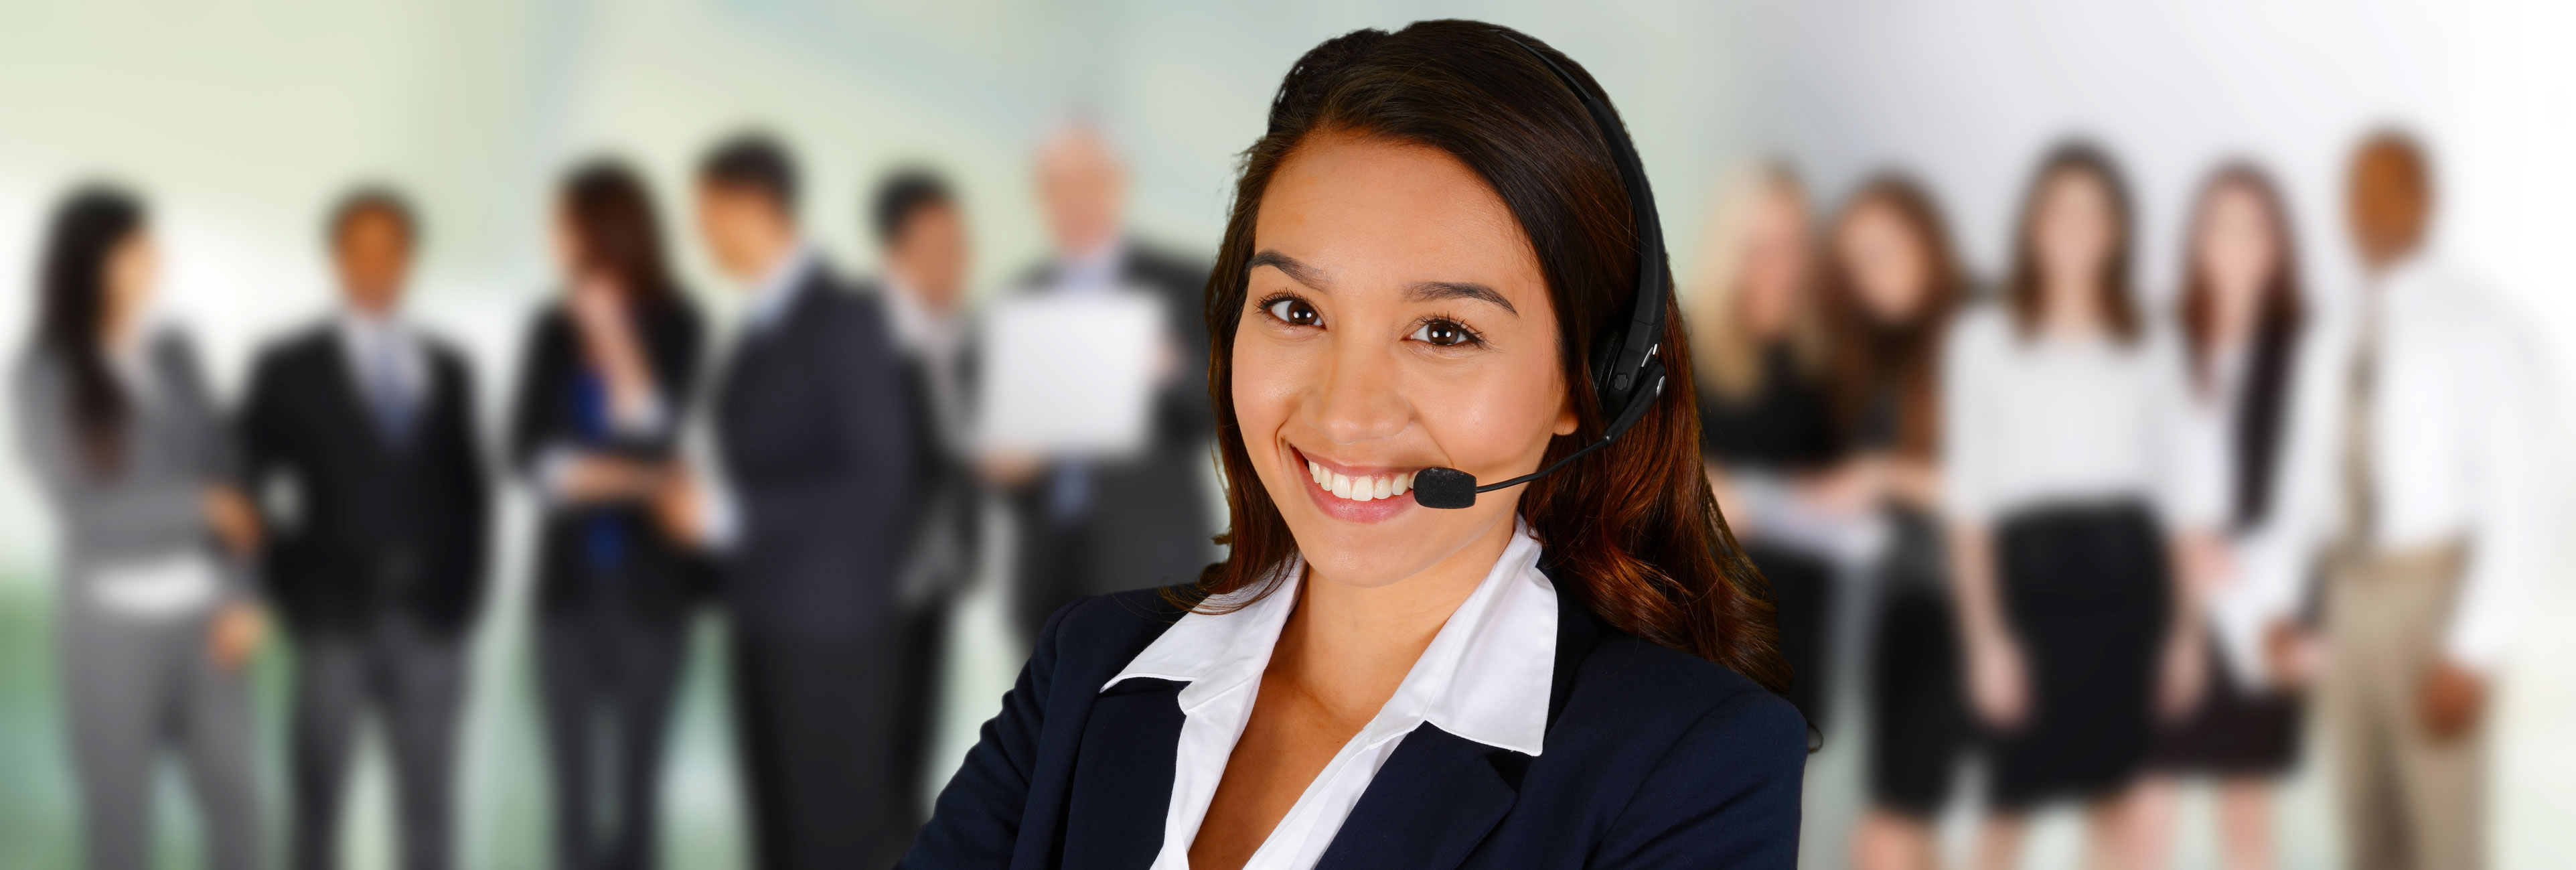 women-with-headset